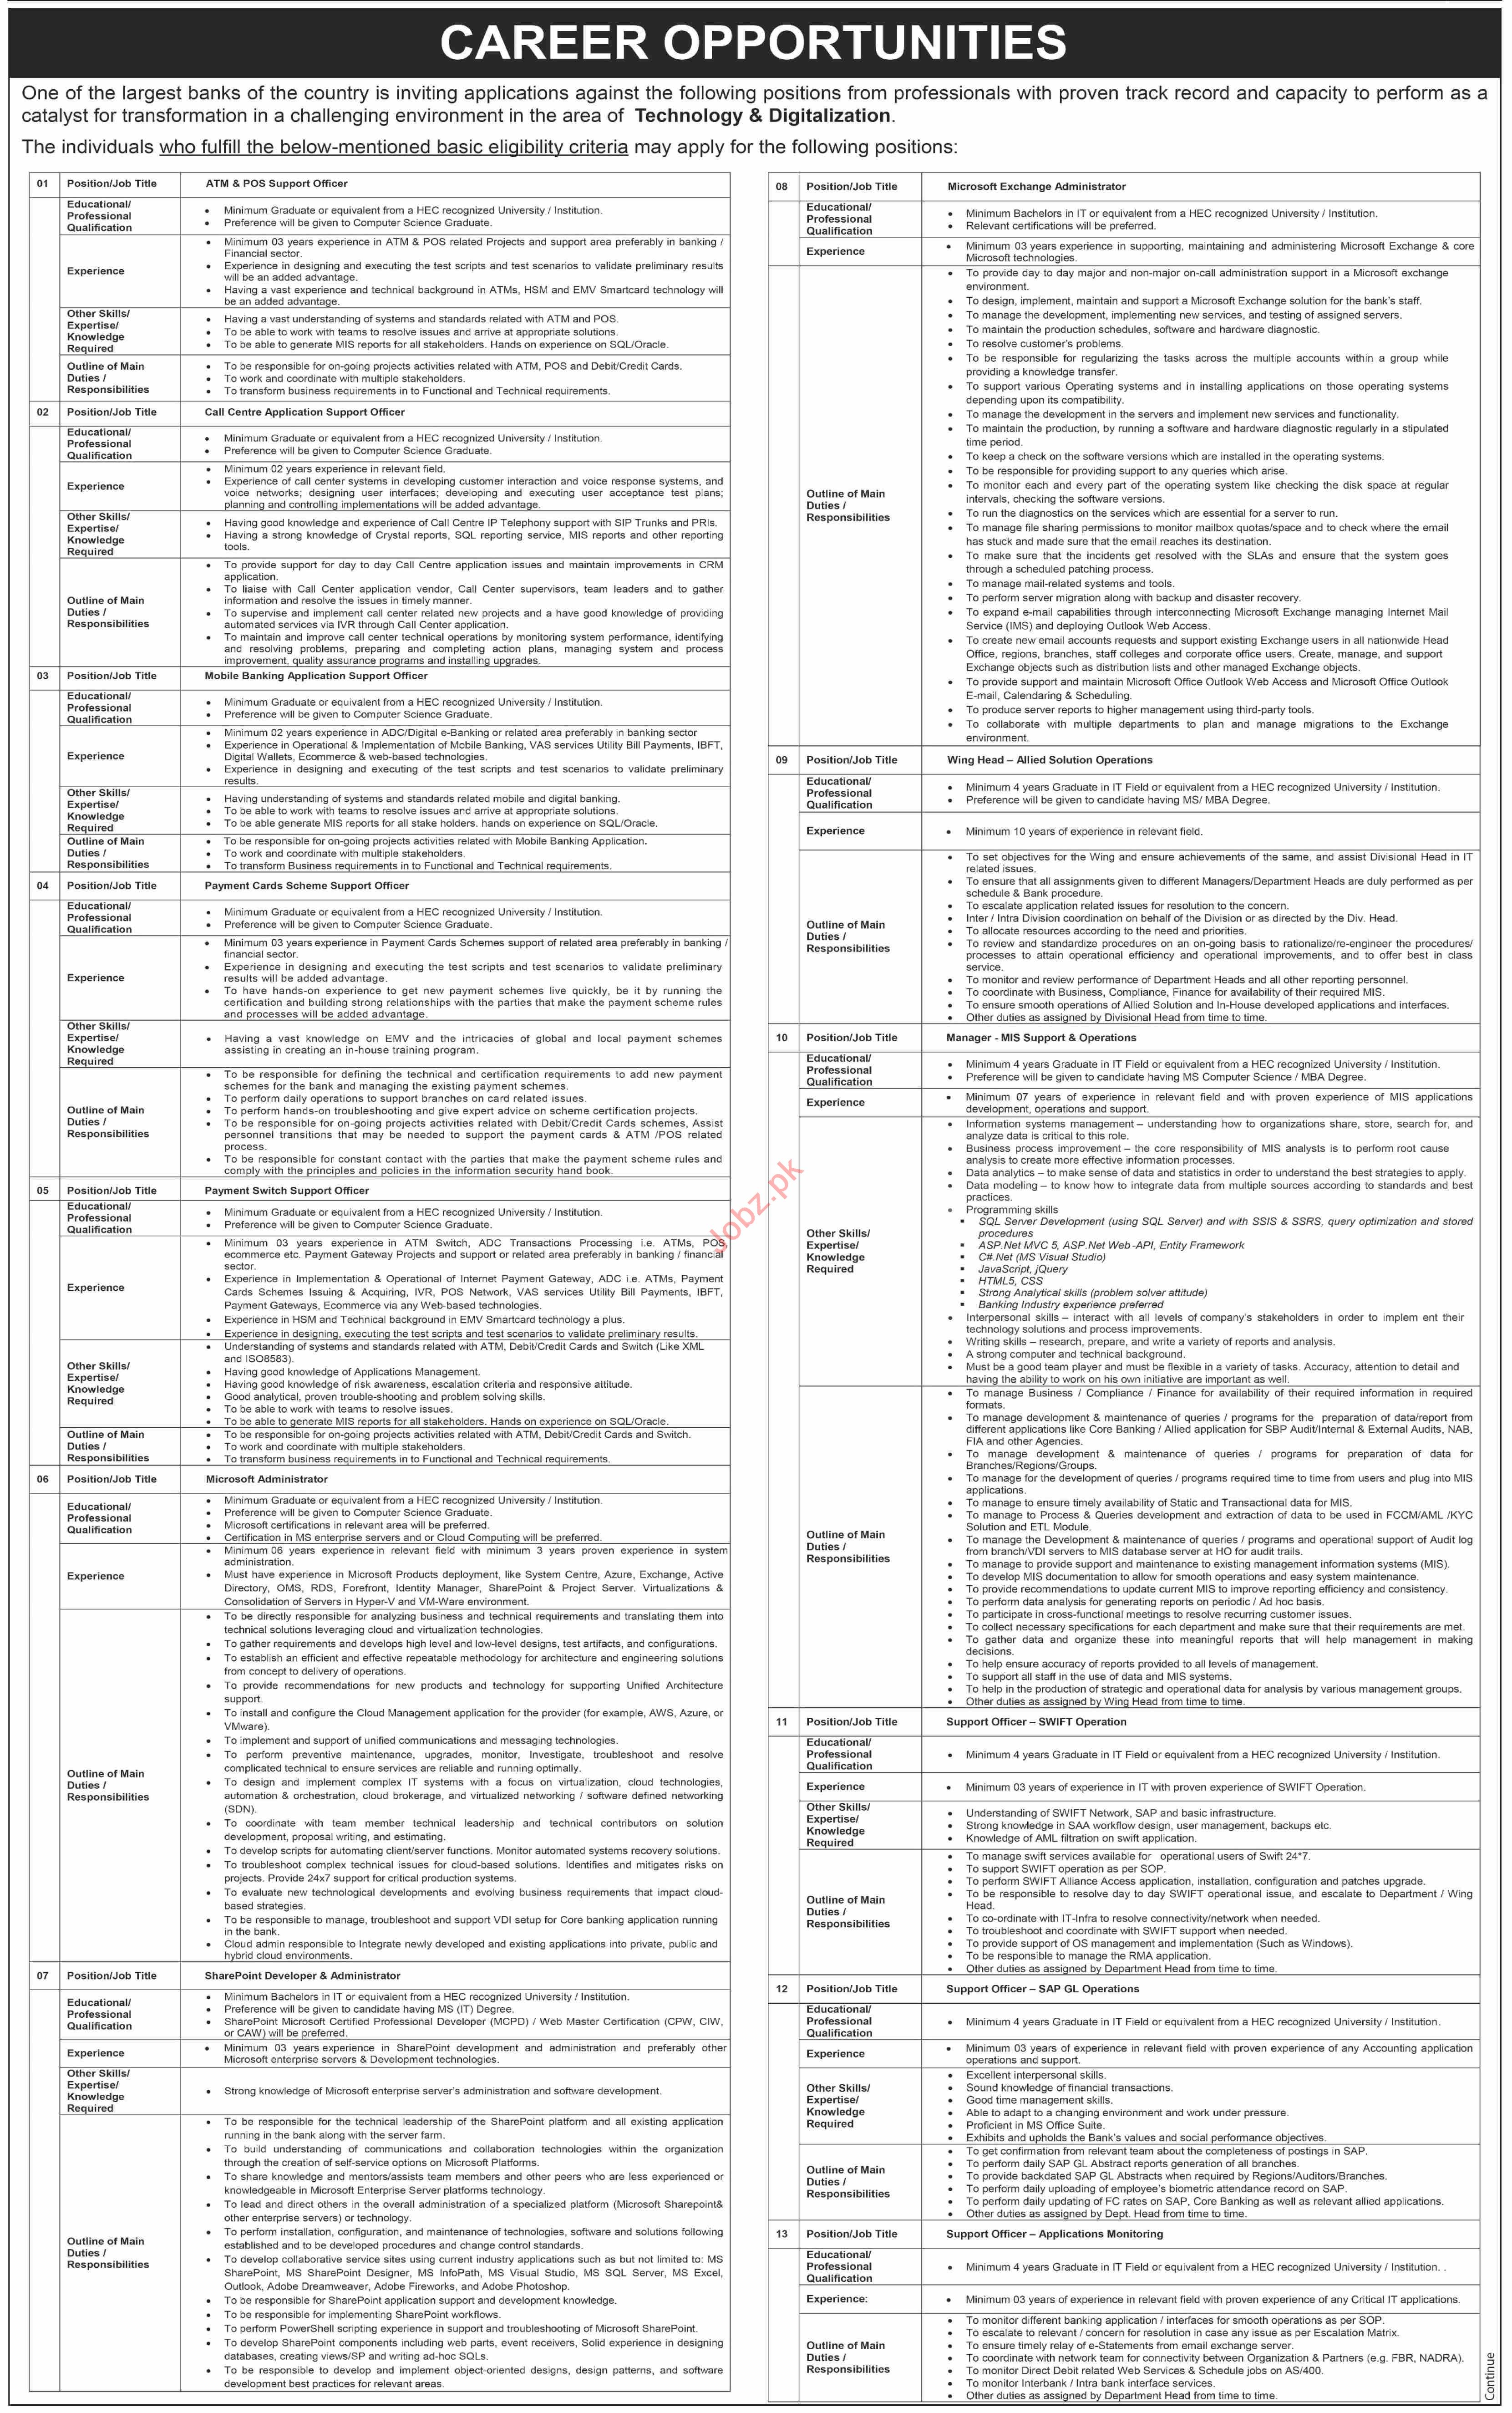 POS Support Officer & Payment Switch Support Officer Jobs